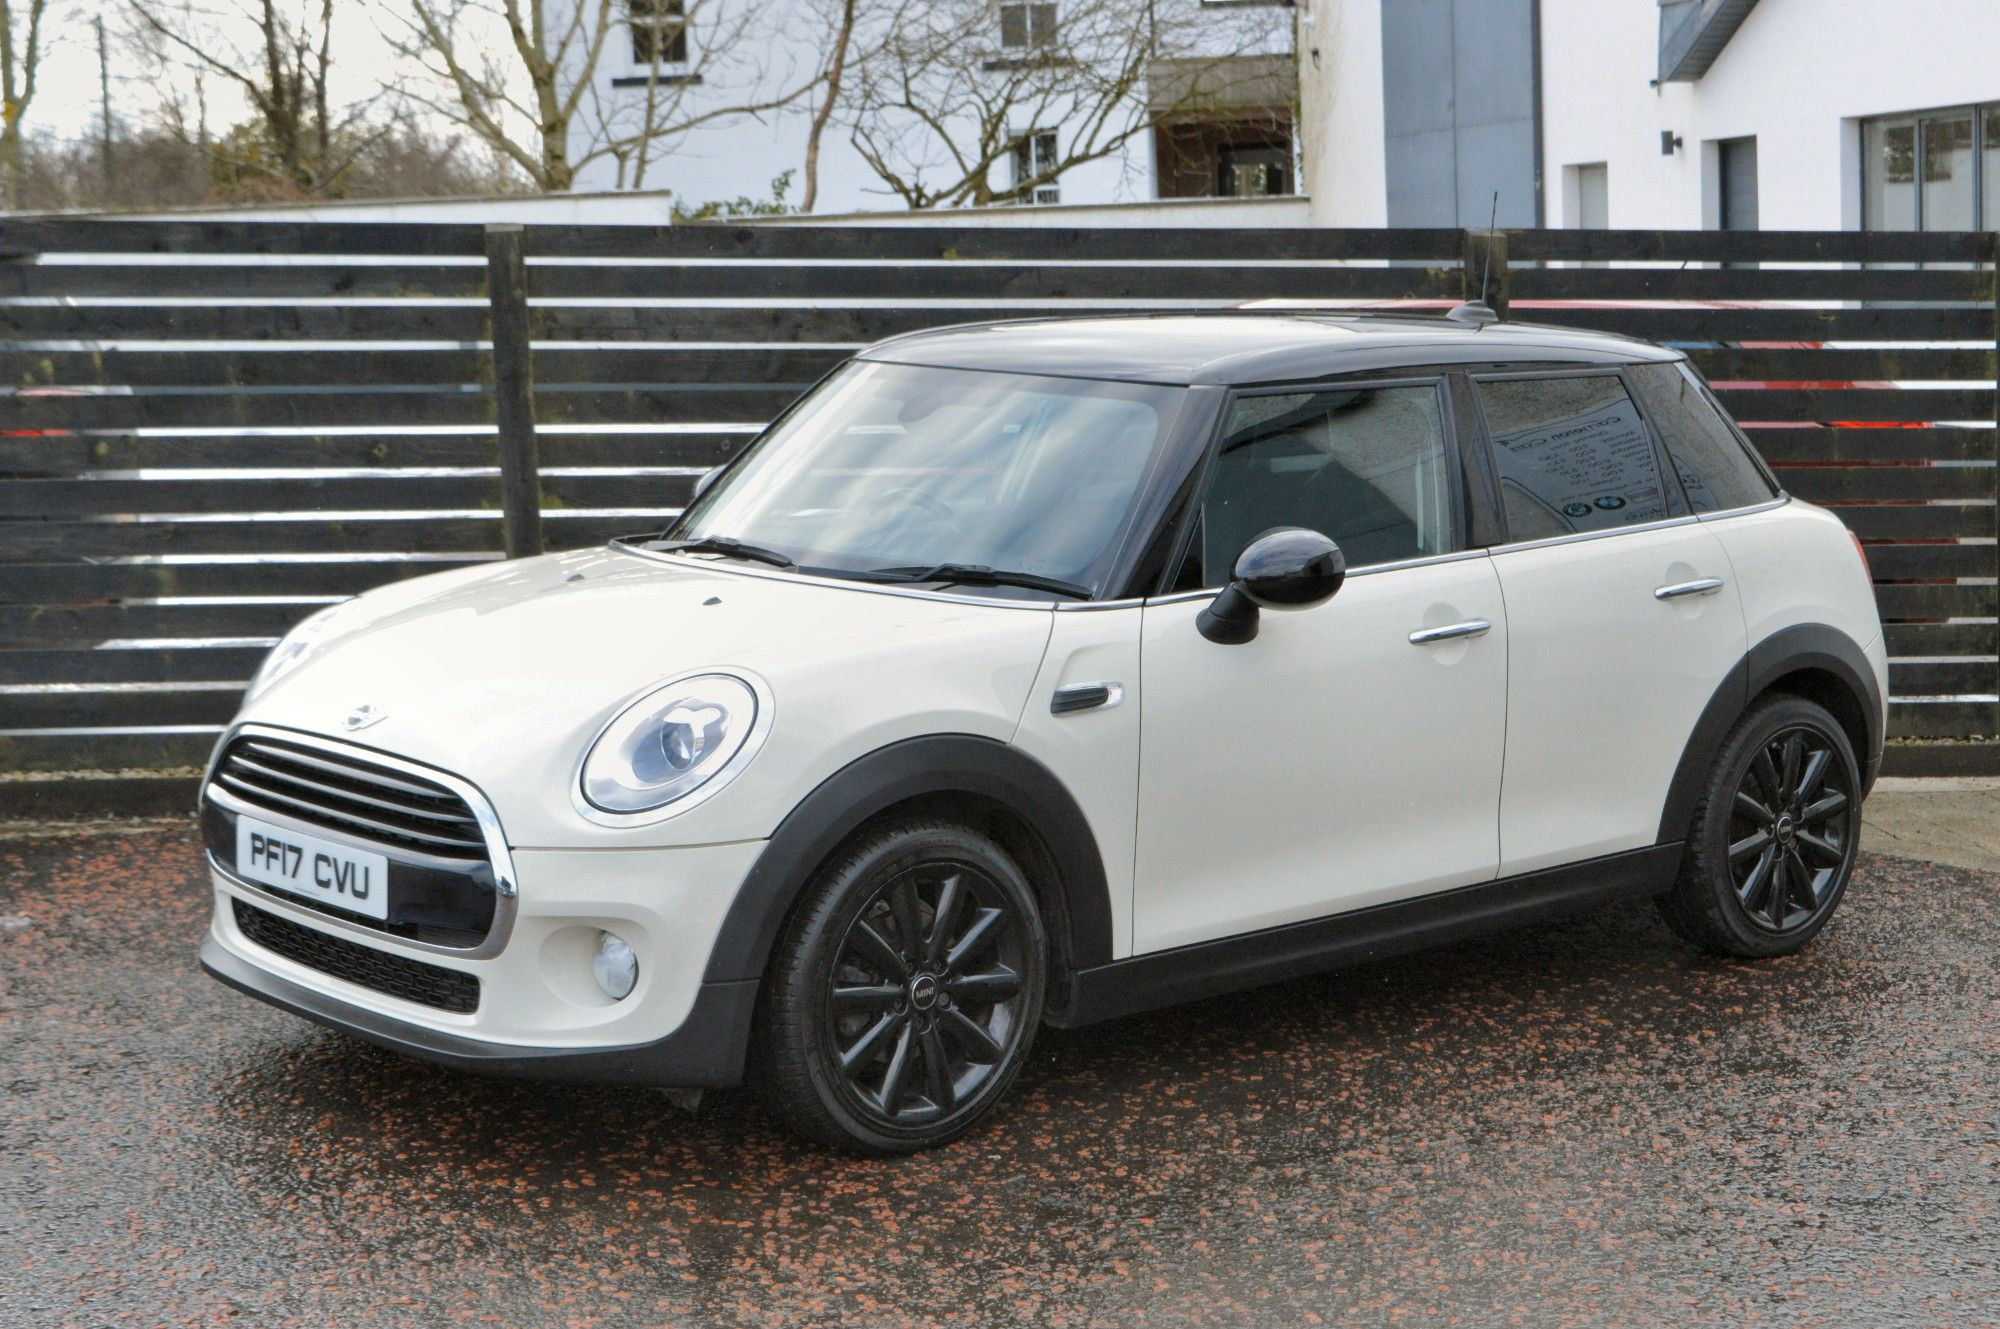 USED 2017 17 MINI HATCH COOPER 1.5 COOPER D 5d 114 BHP 6 MONTHS RAC WARRANTY FREE + 12 MONTHS ROAD SIDE RECOVERY!